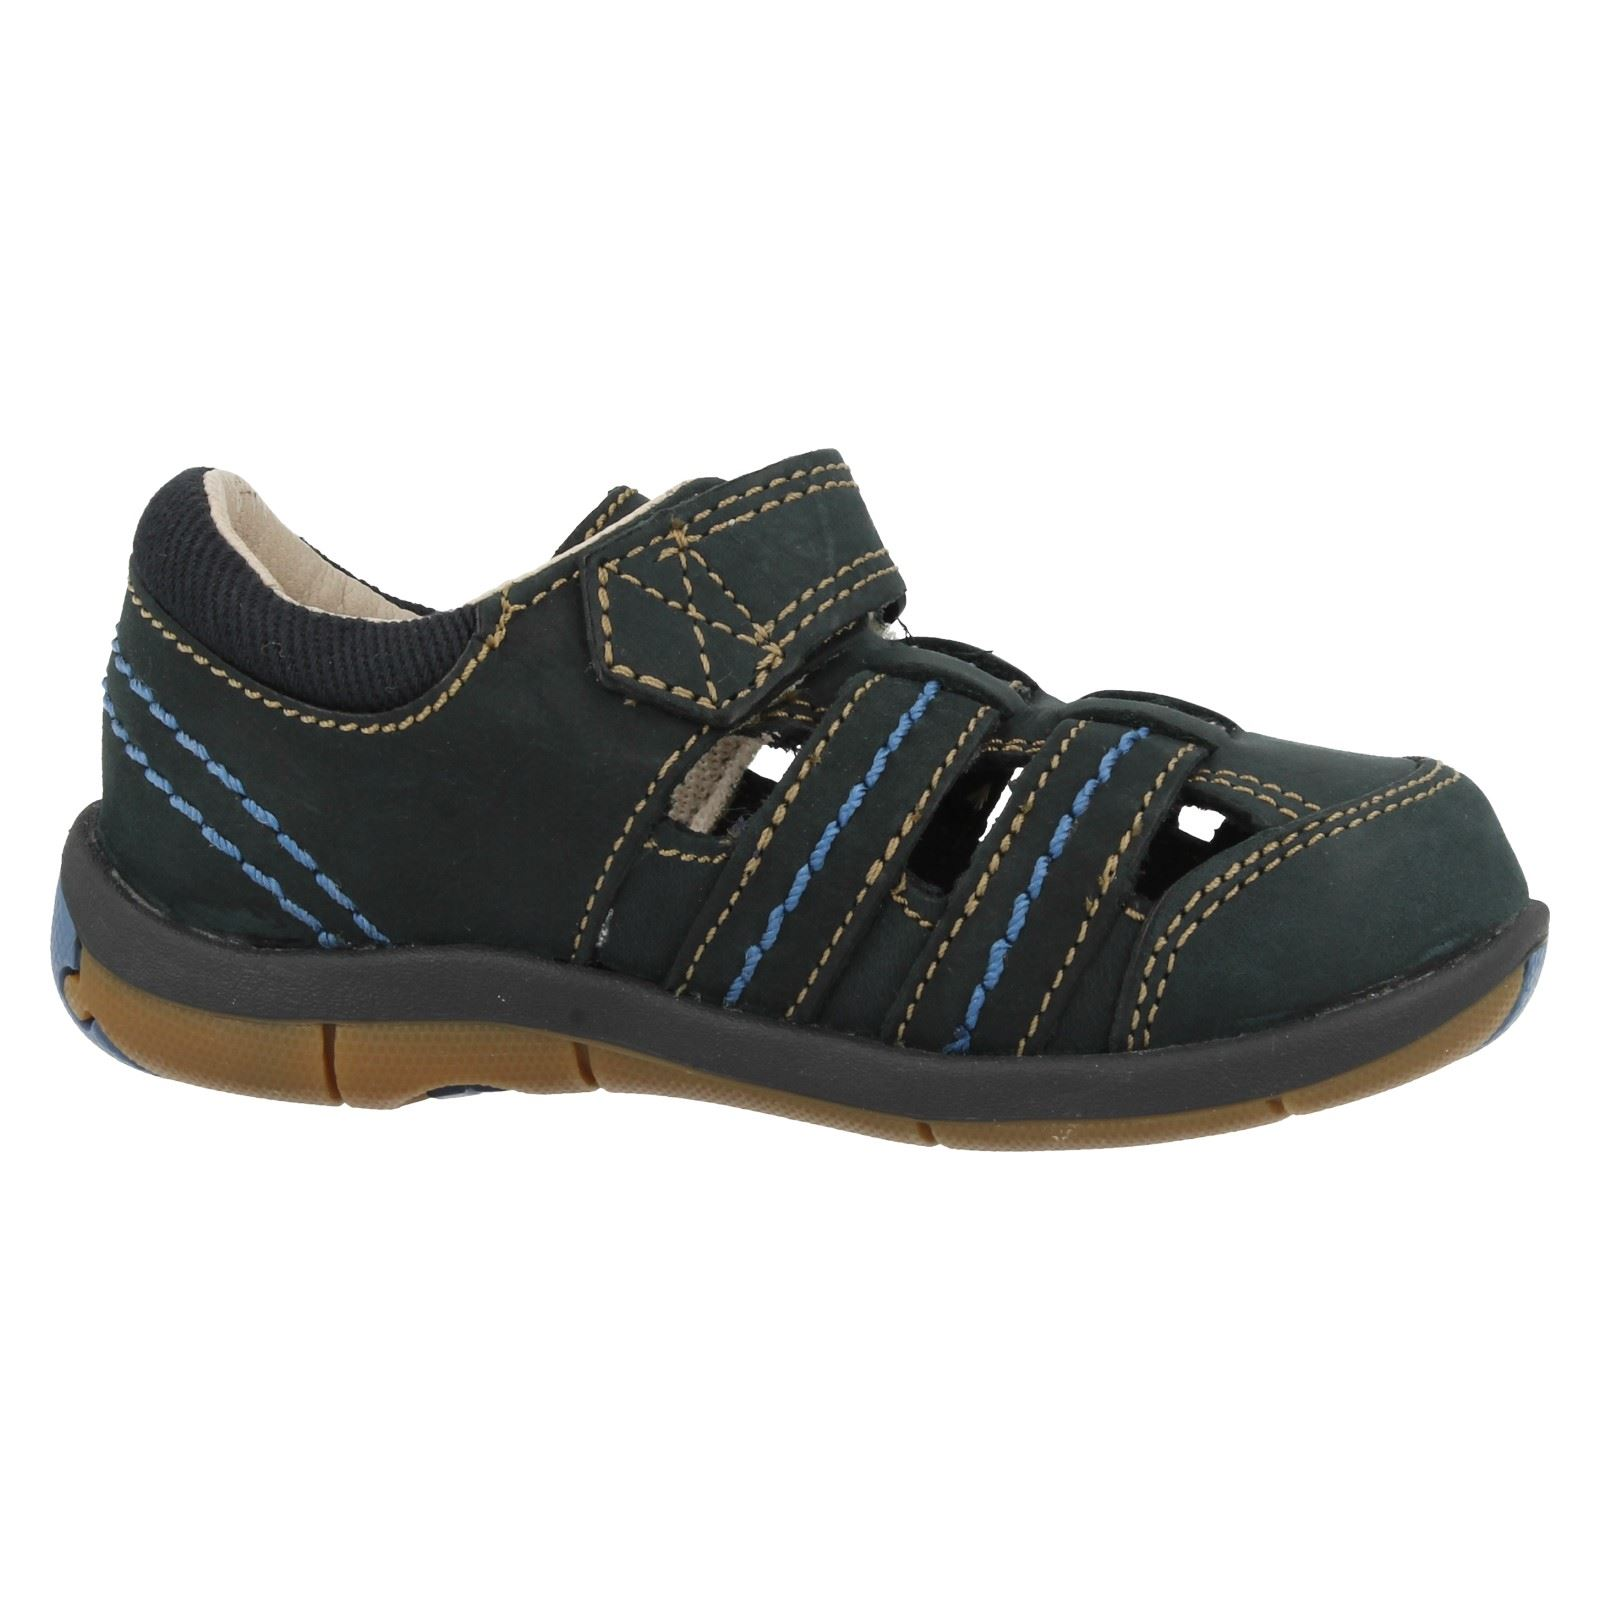 clarks shoes objectives Conflicting stakeholder objectives different stakeholders have different objectives the interests of different stakeholder groups can conflict.